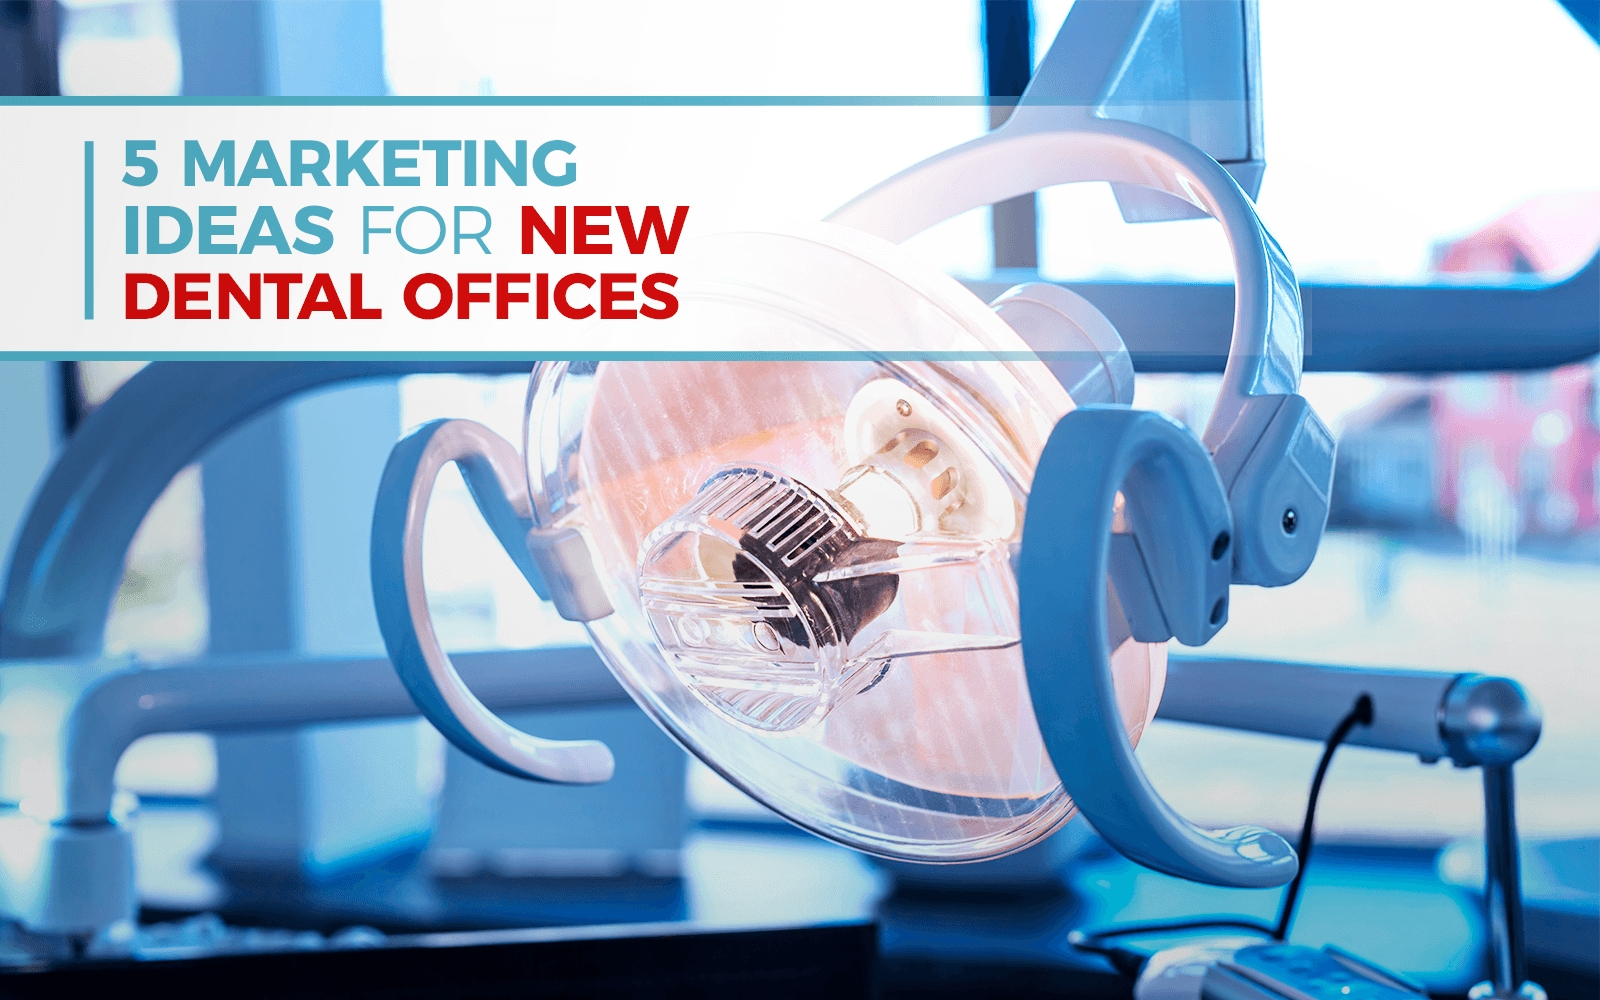 10 Unique Marketing Ideas For Dental Offices opening a new dental office marketing ideas to help your get